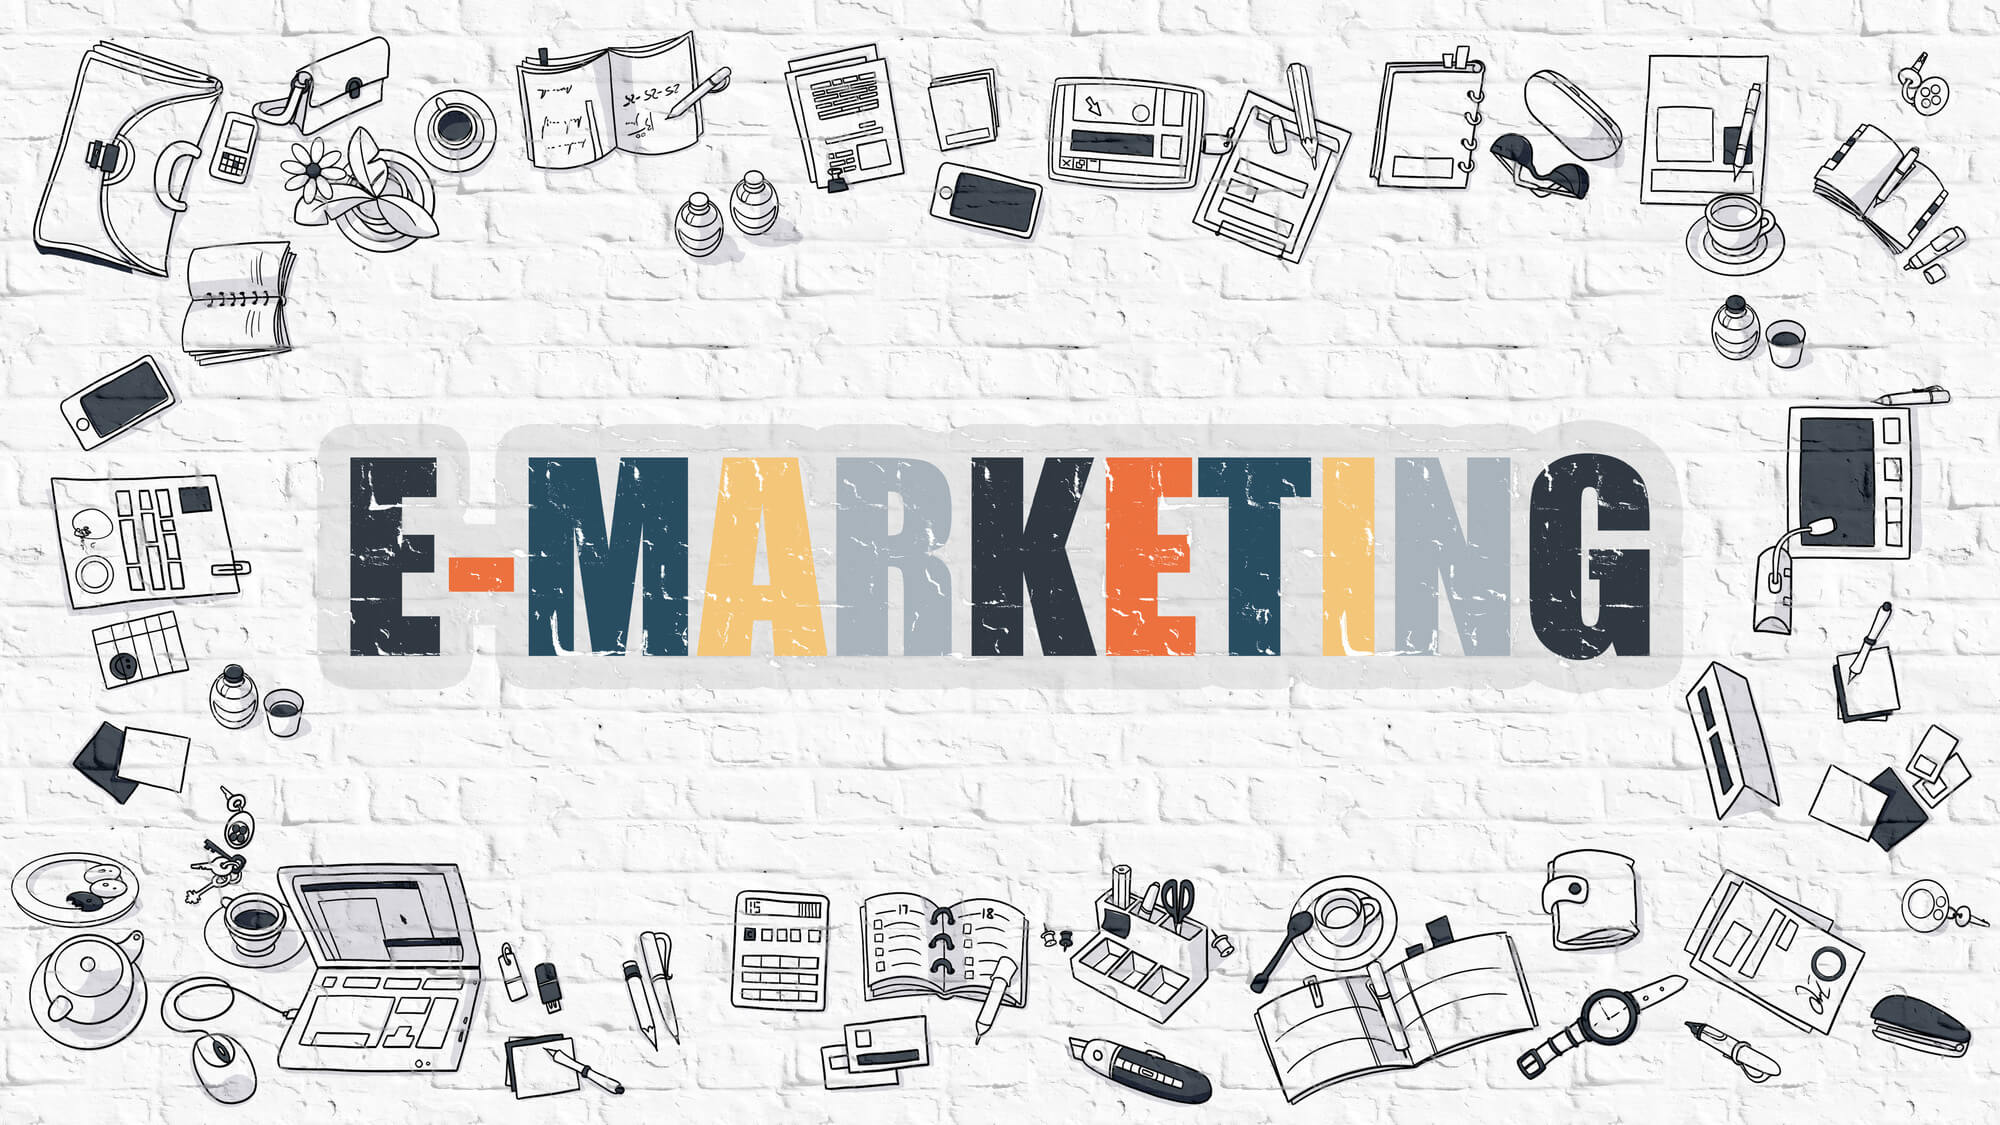 Is Emarketing Good for Small Businesses?